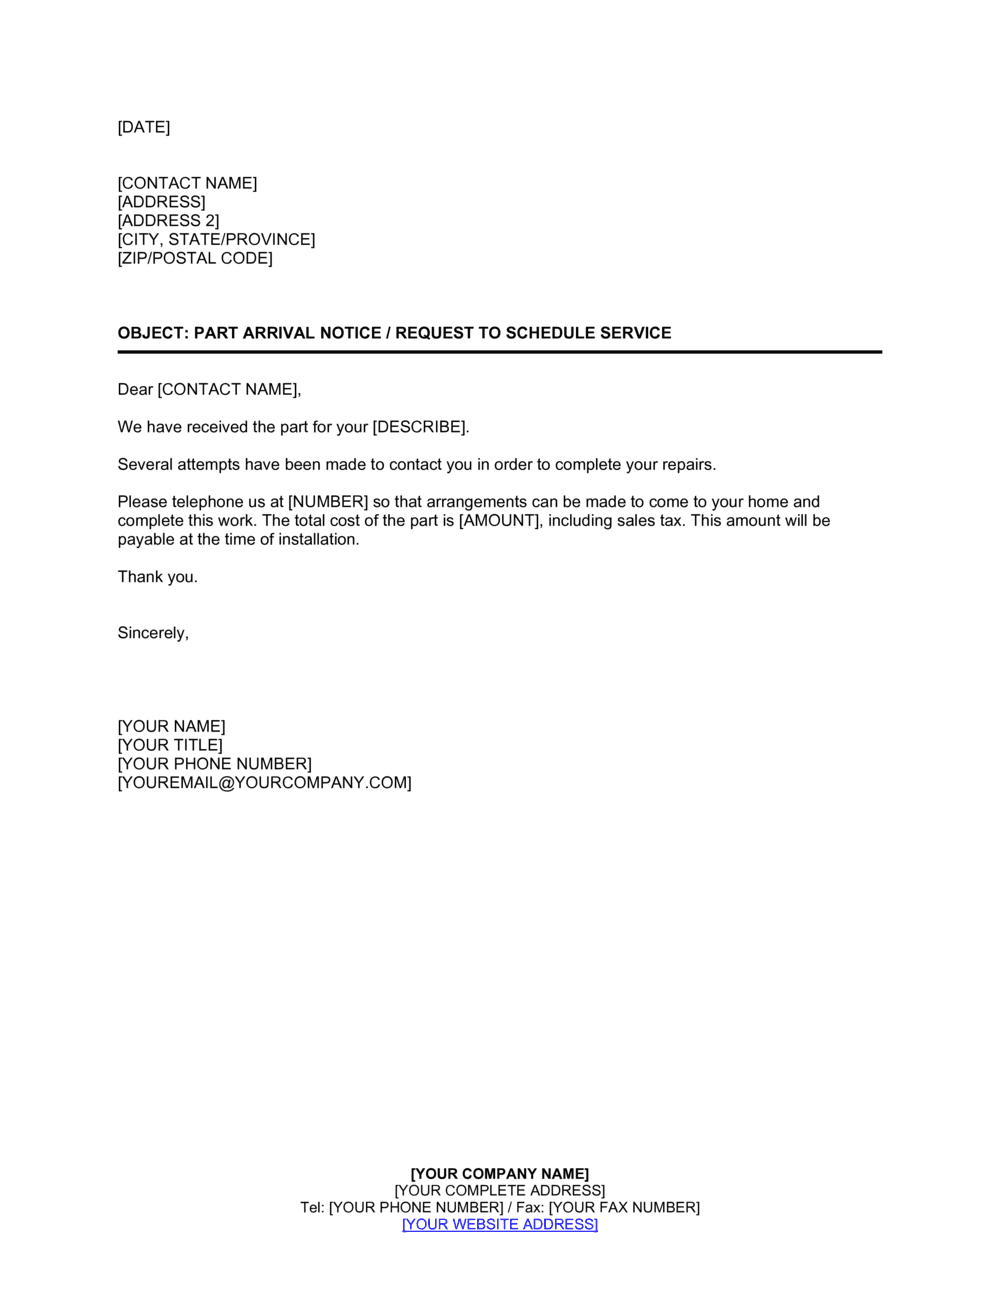 Business-in-a-Box's Part Arrival Notice With Request to Schedule Service Template